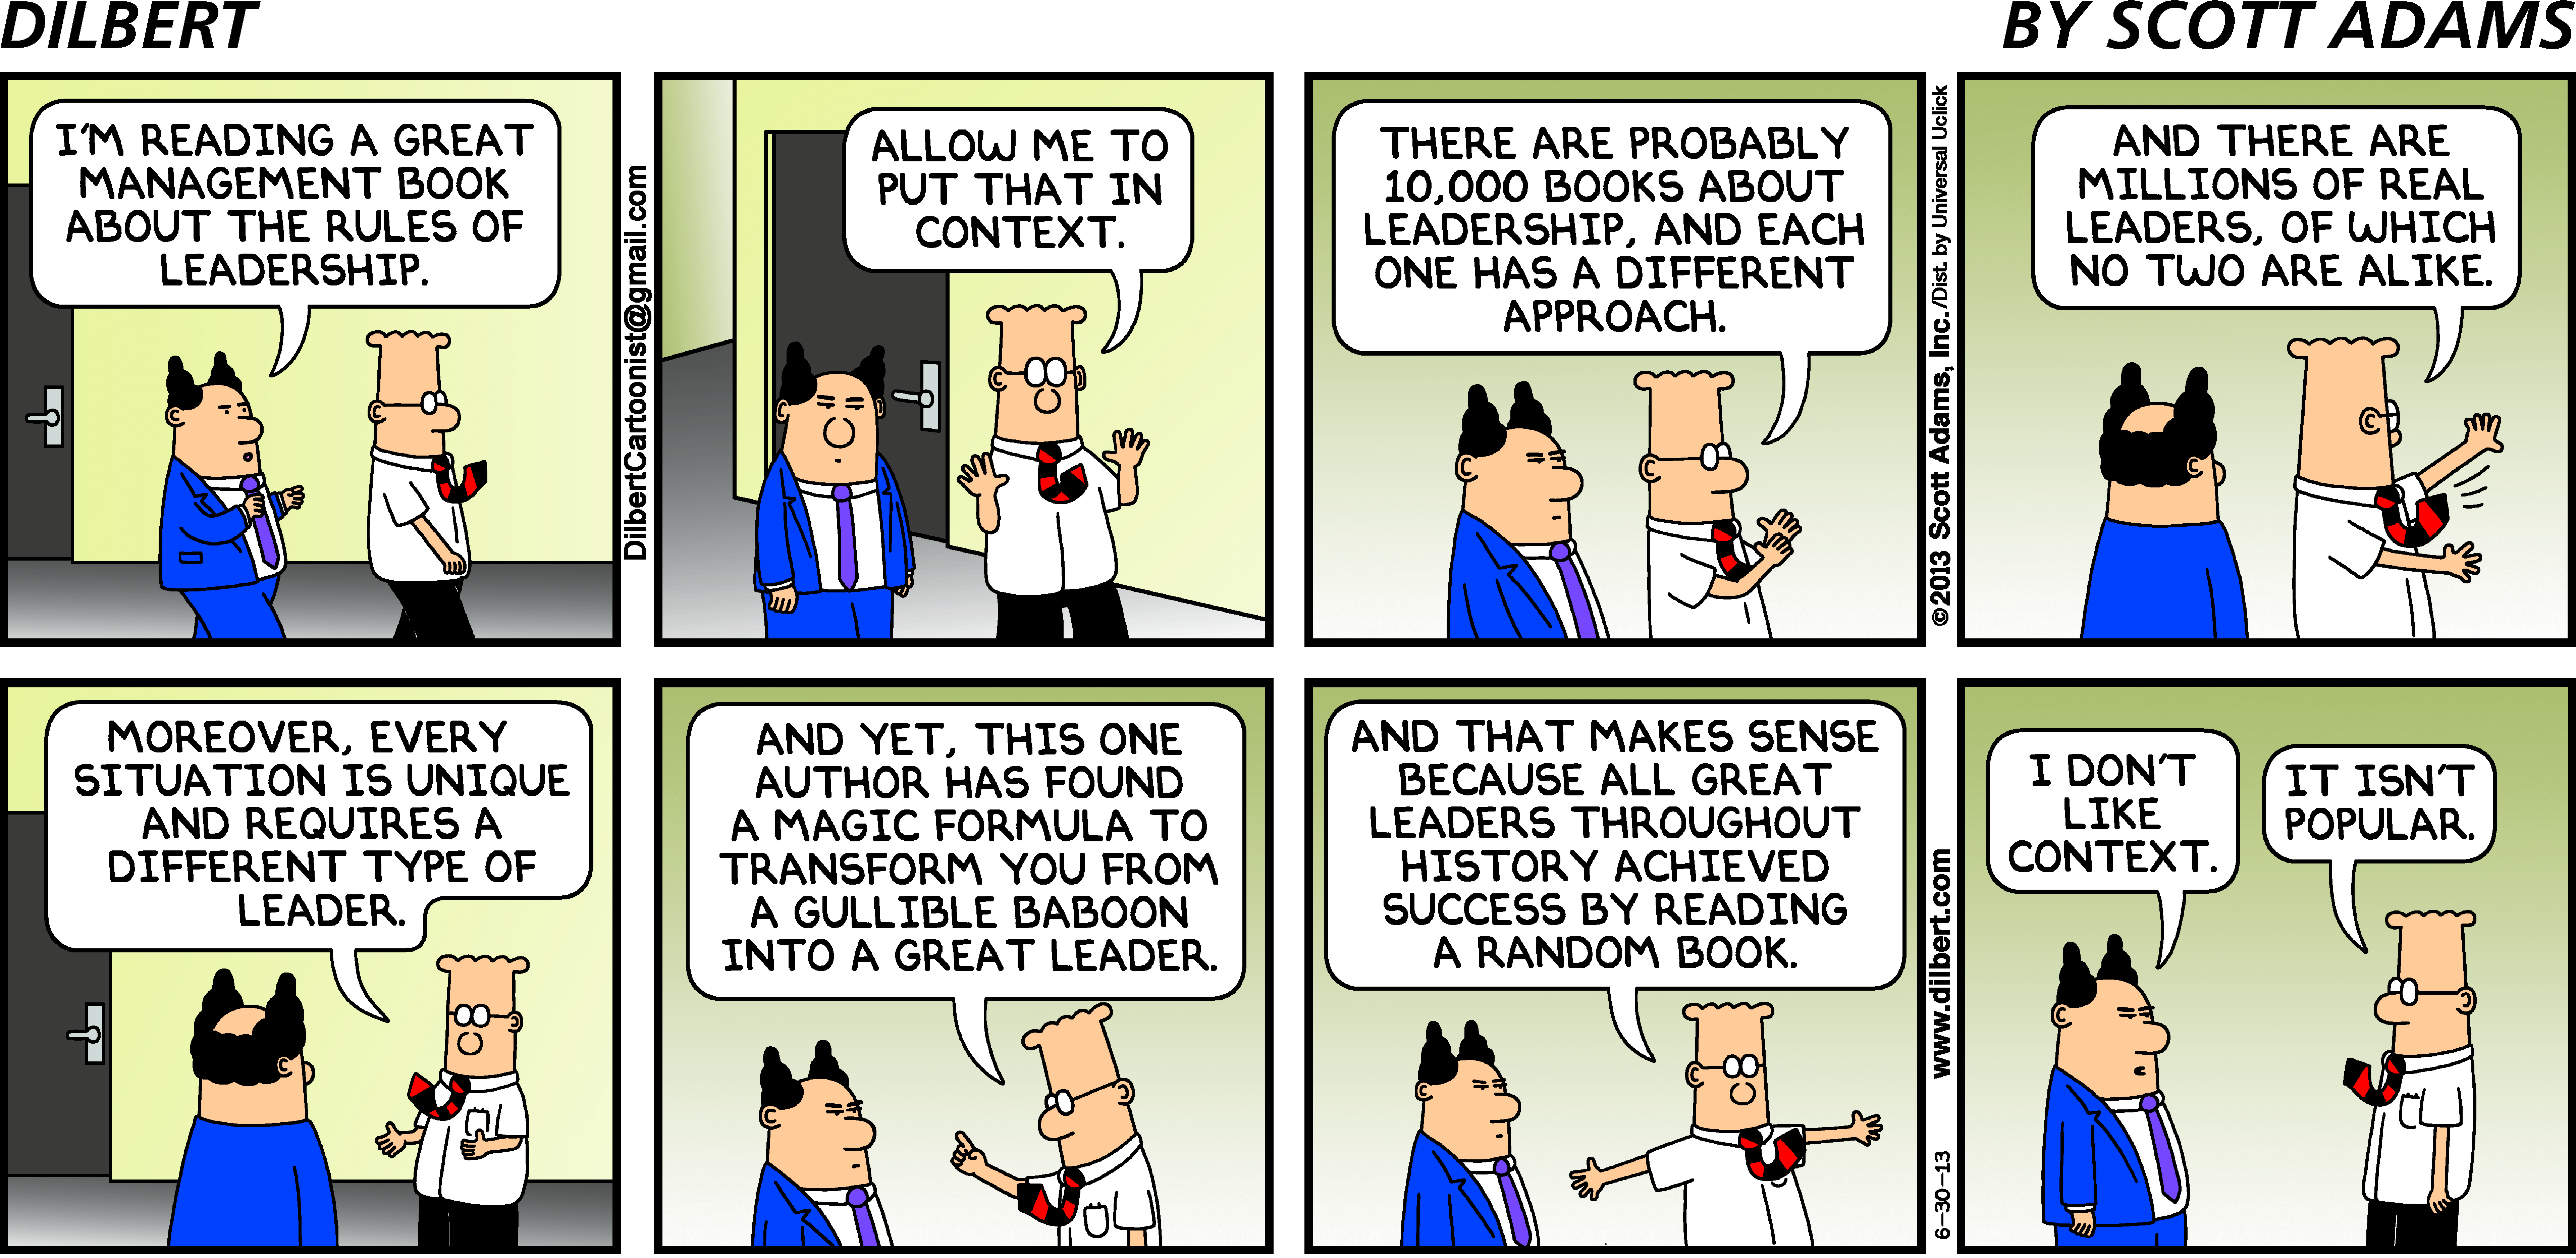 DILBERT © 2013 Scott Adams. Used By permission of UNIVERSAL UCLICK. All rights reserved.